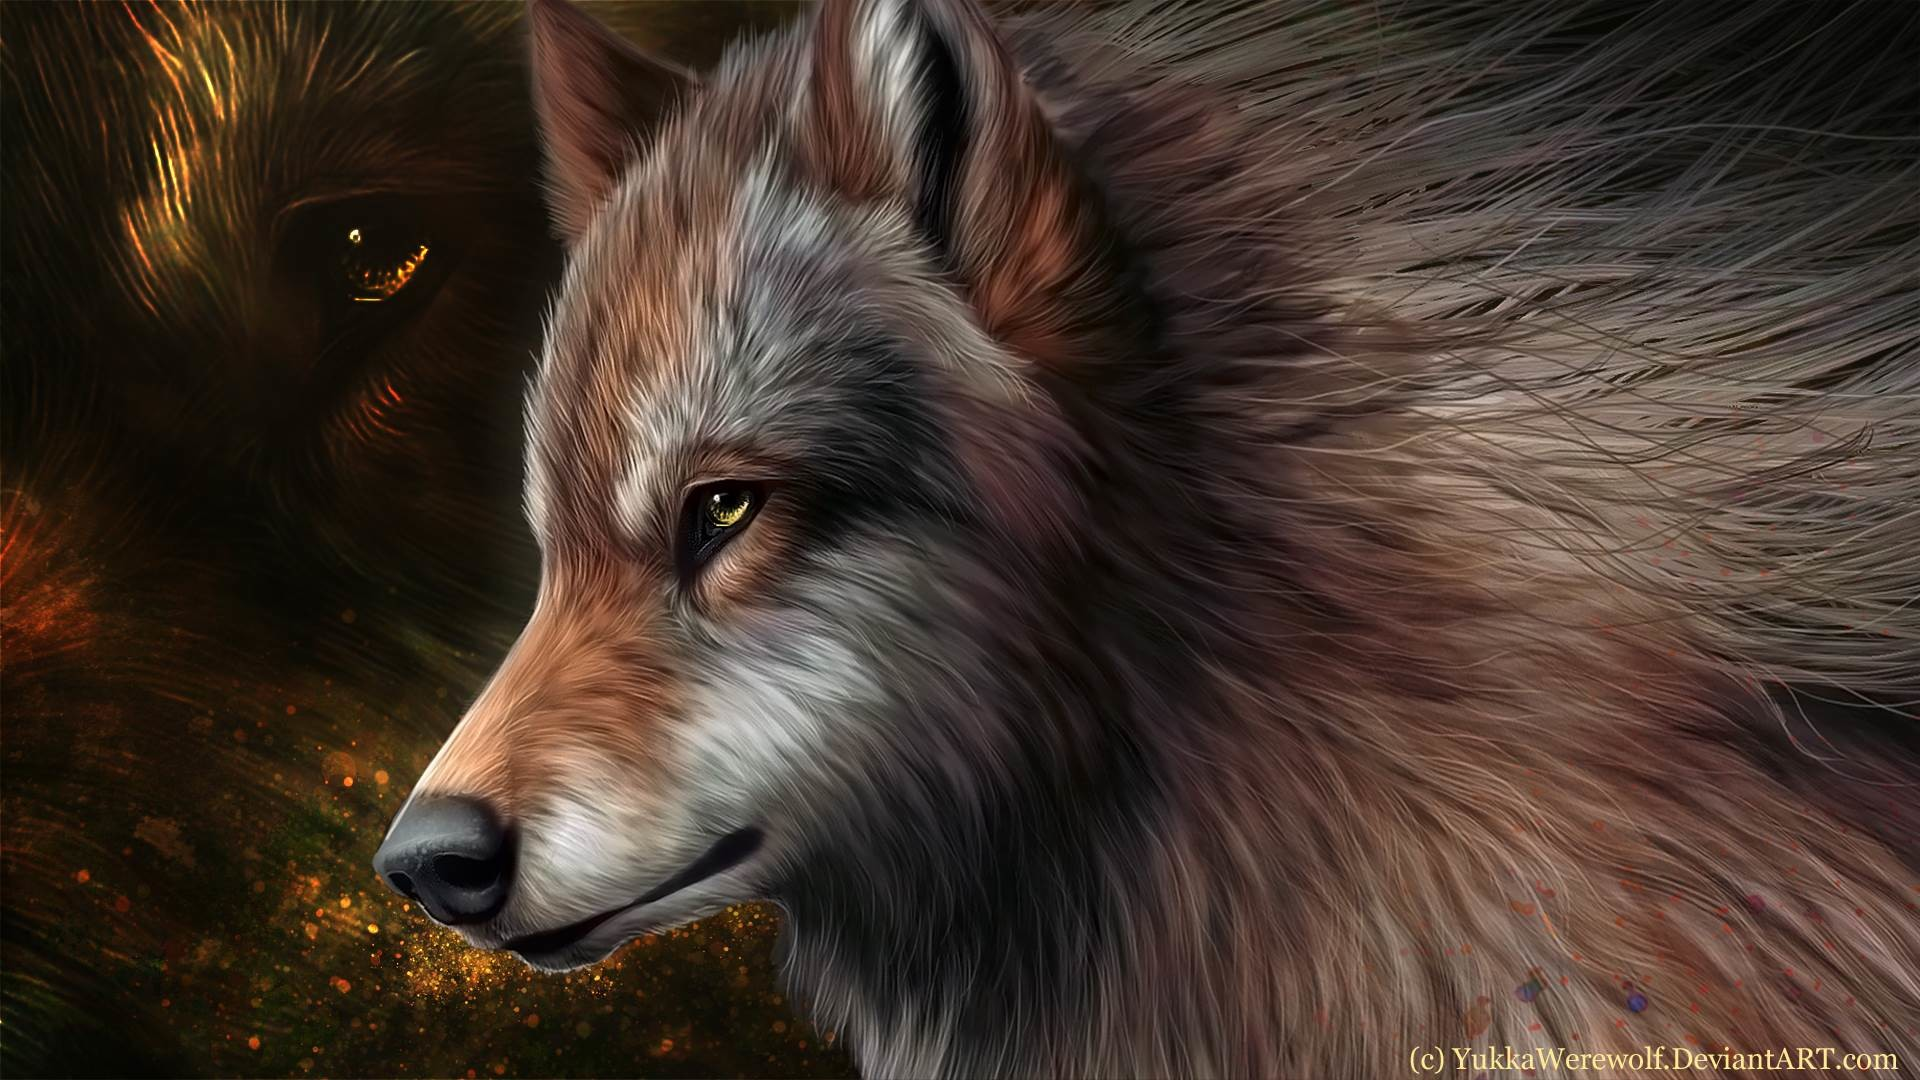 1920x1080 Collection of Animated Wolf Wallpapers on HDWallpapers 1600×1200 Animated Wolf  Wallpapers | Adorable Wallpapers